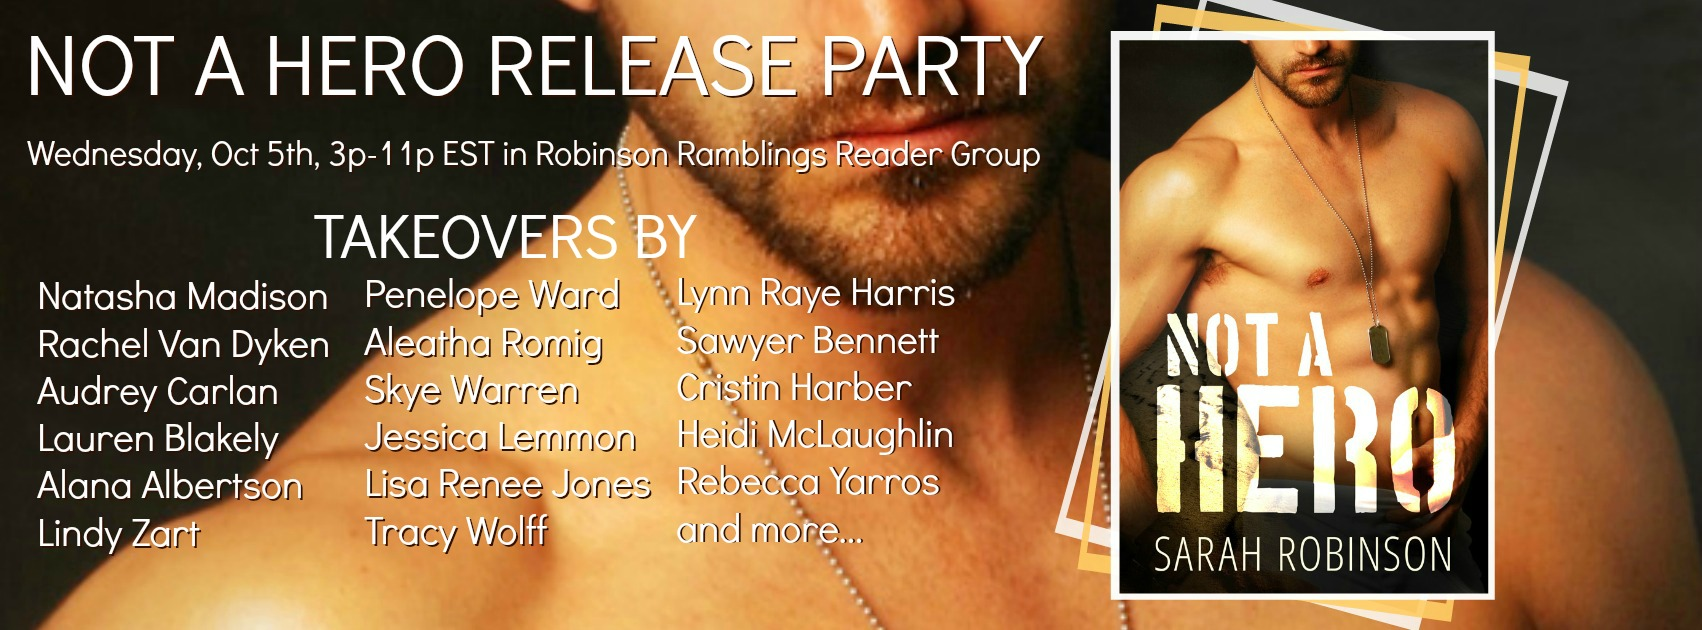 not-a-hero-release-party-banner-1-w-authors